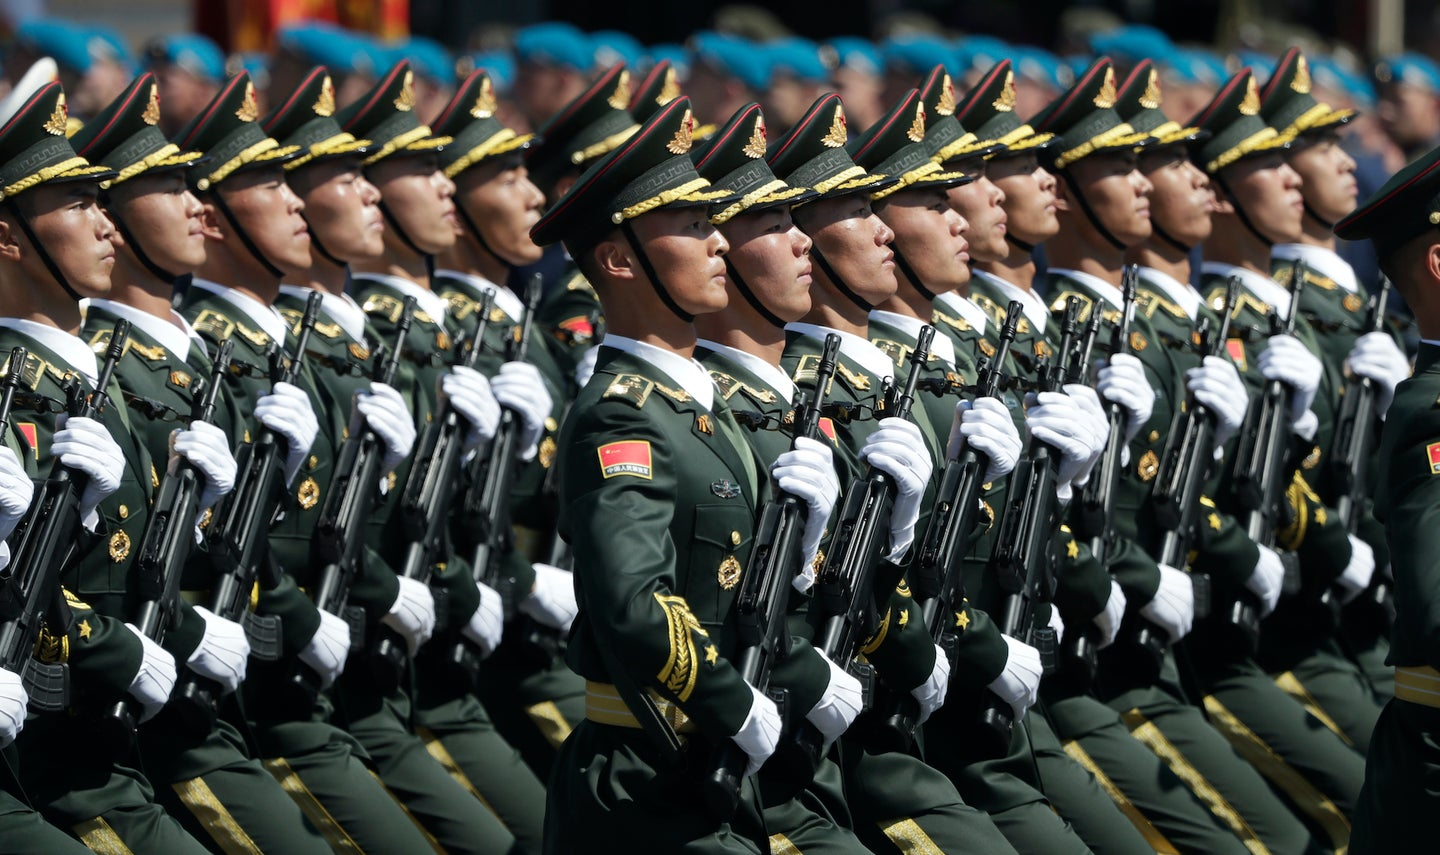 No, the US didn't bomb 50,000 Chinese troops as they tried to invade Maine